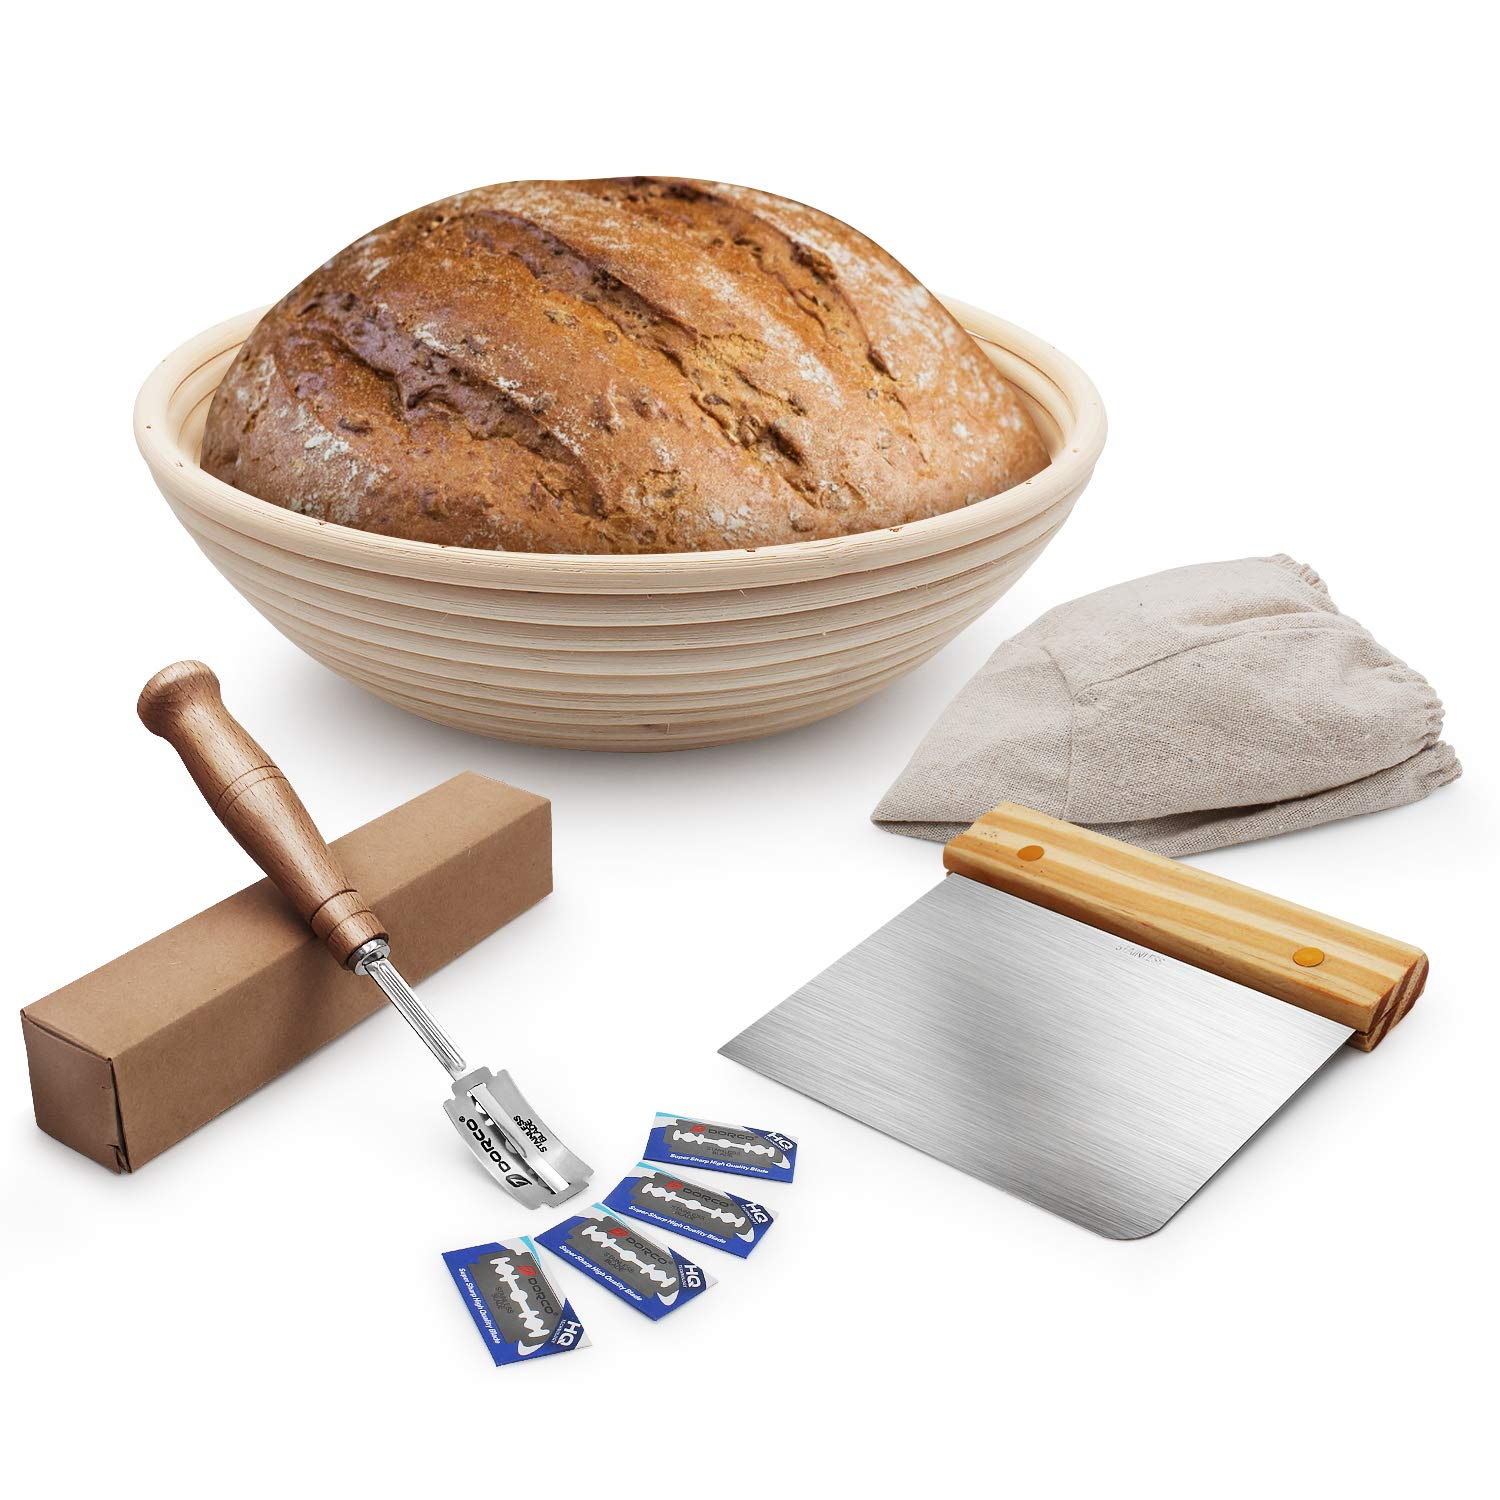 Banneton Proofing Basket Set 10 Inch, Sourdough Proofing Basket Round + Cloth Liner + Stainless Steel Dough Scraper + Premium Hand Crafted Bread Lame for Professional & Home Bakers